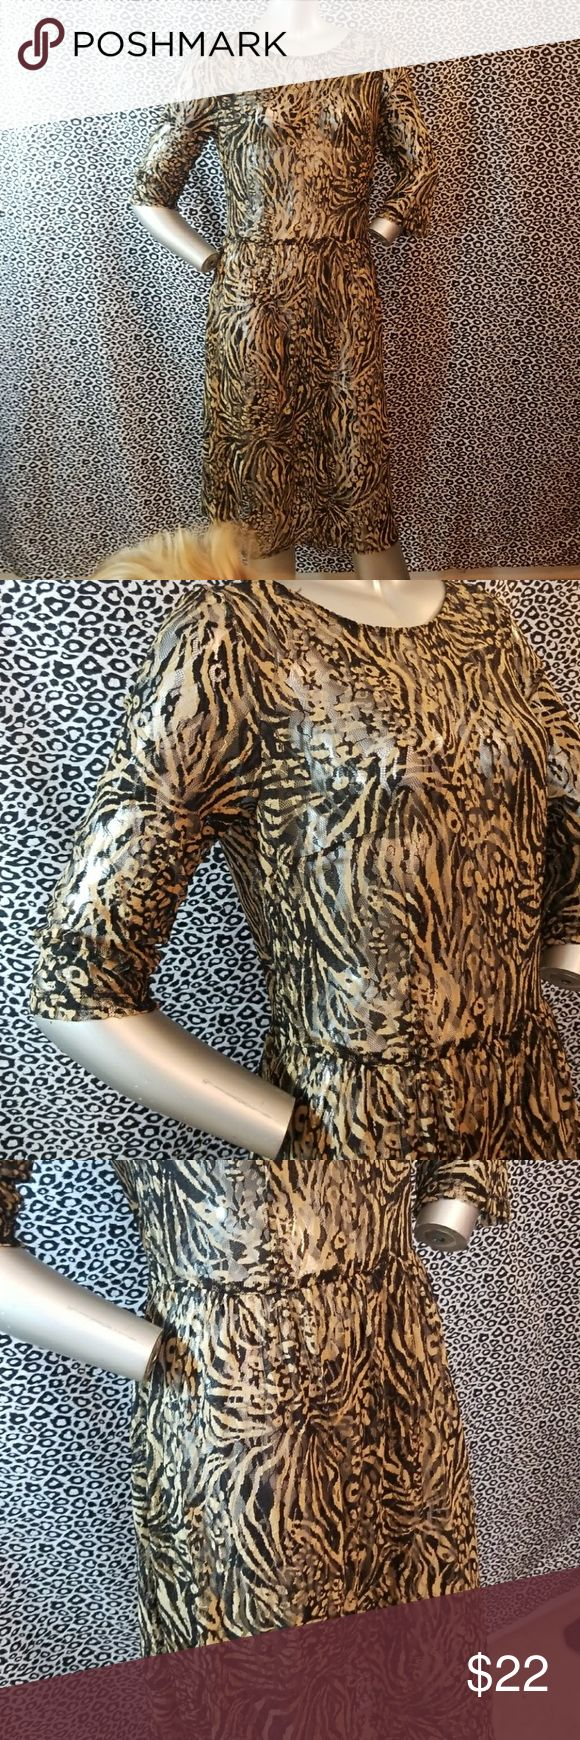 """💚50% OFF💚Leopard Lace See thru Dress 💚50% OFF BUNDLES of 4+ THIS WEEKEND ONLY! No tags. Measures: pit to pit-19.5"""" waist 17.5 length- 41.5"""" Dresses"""